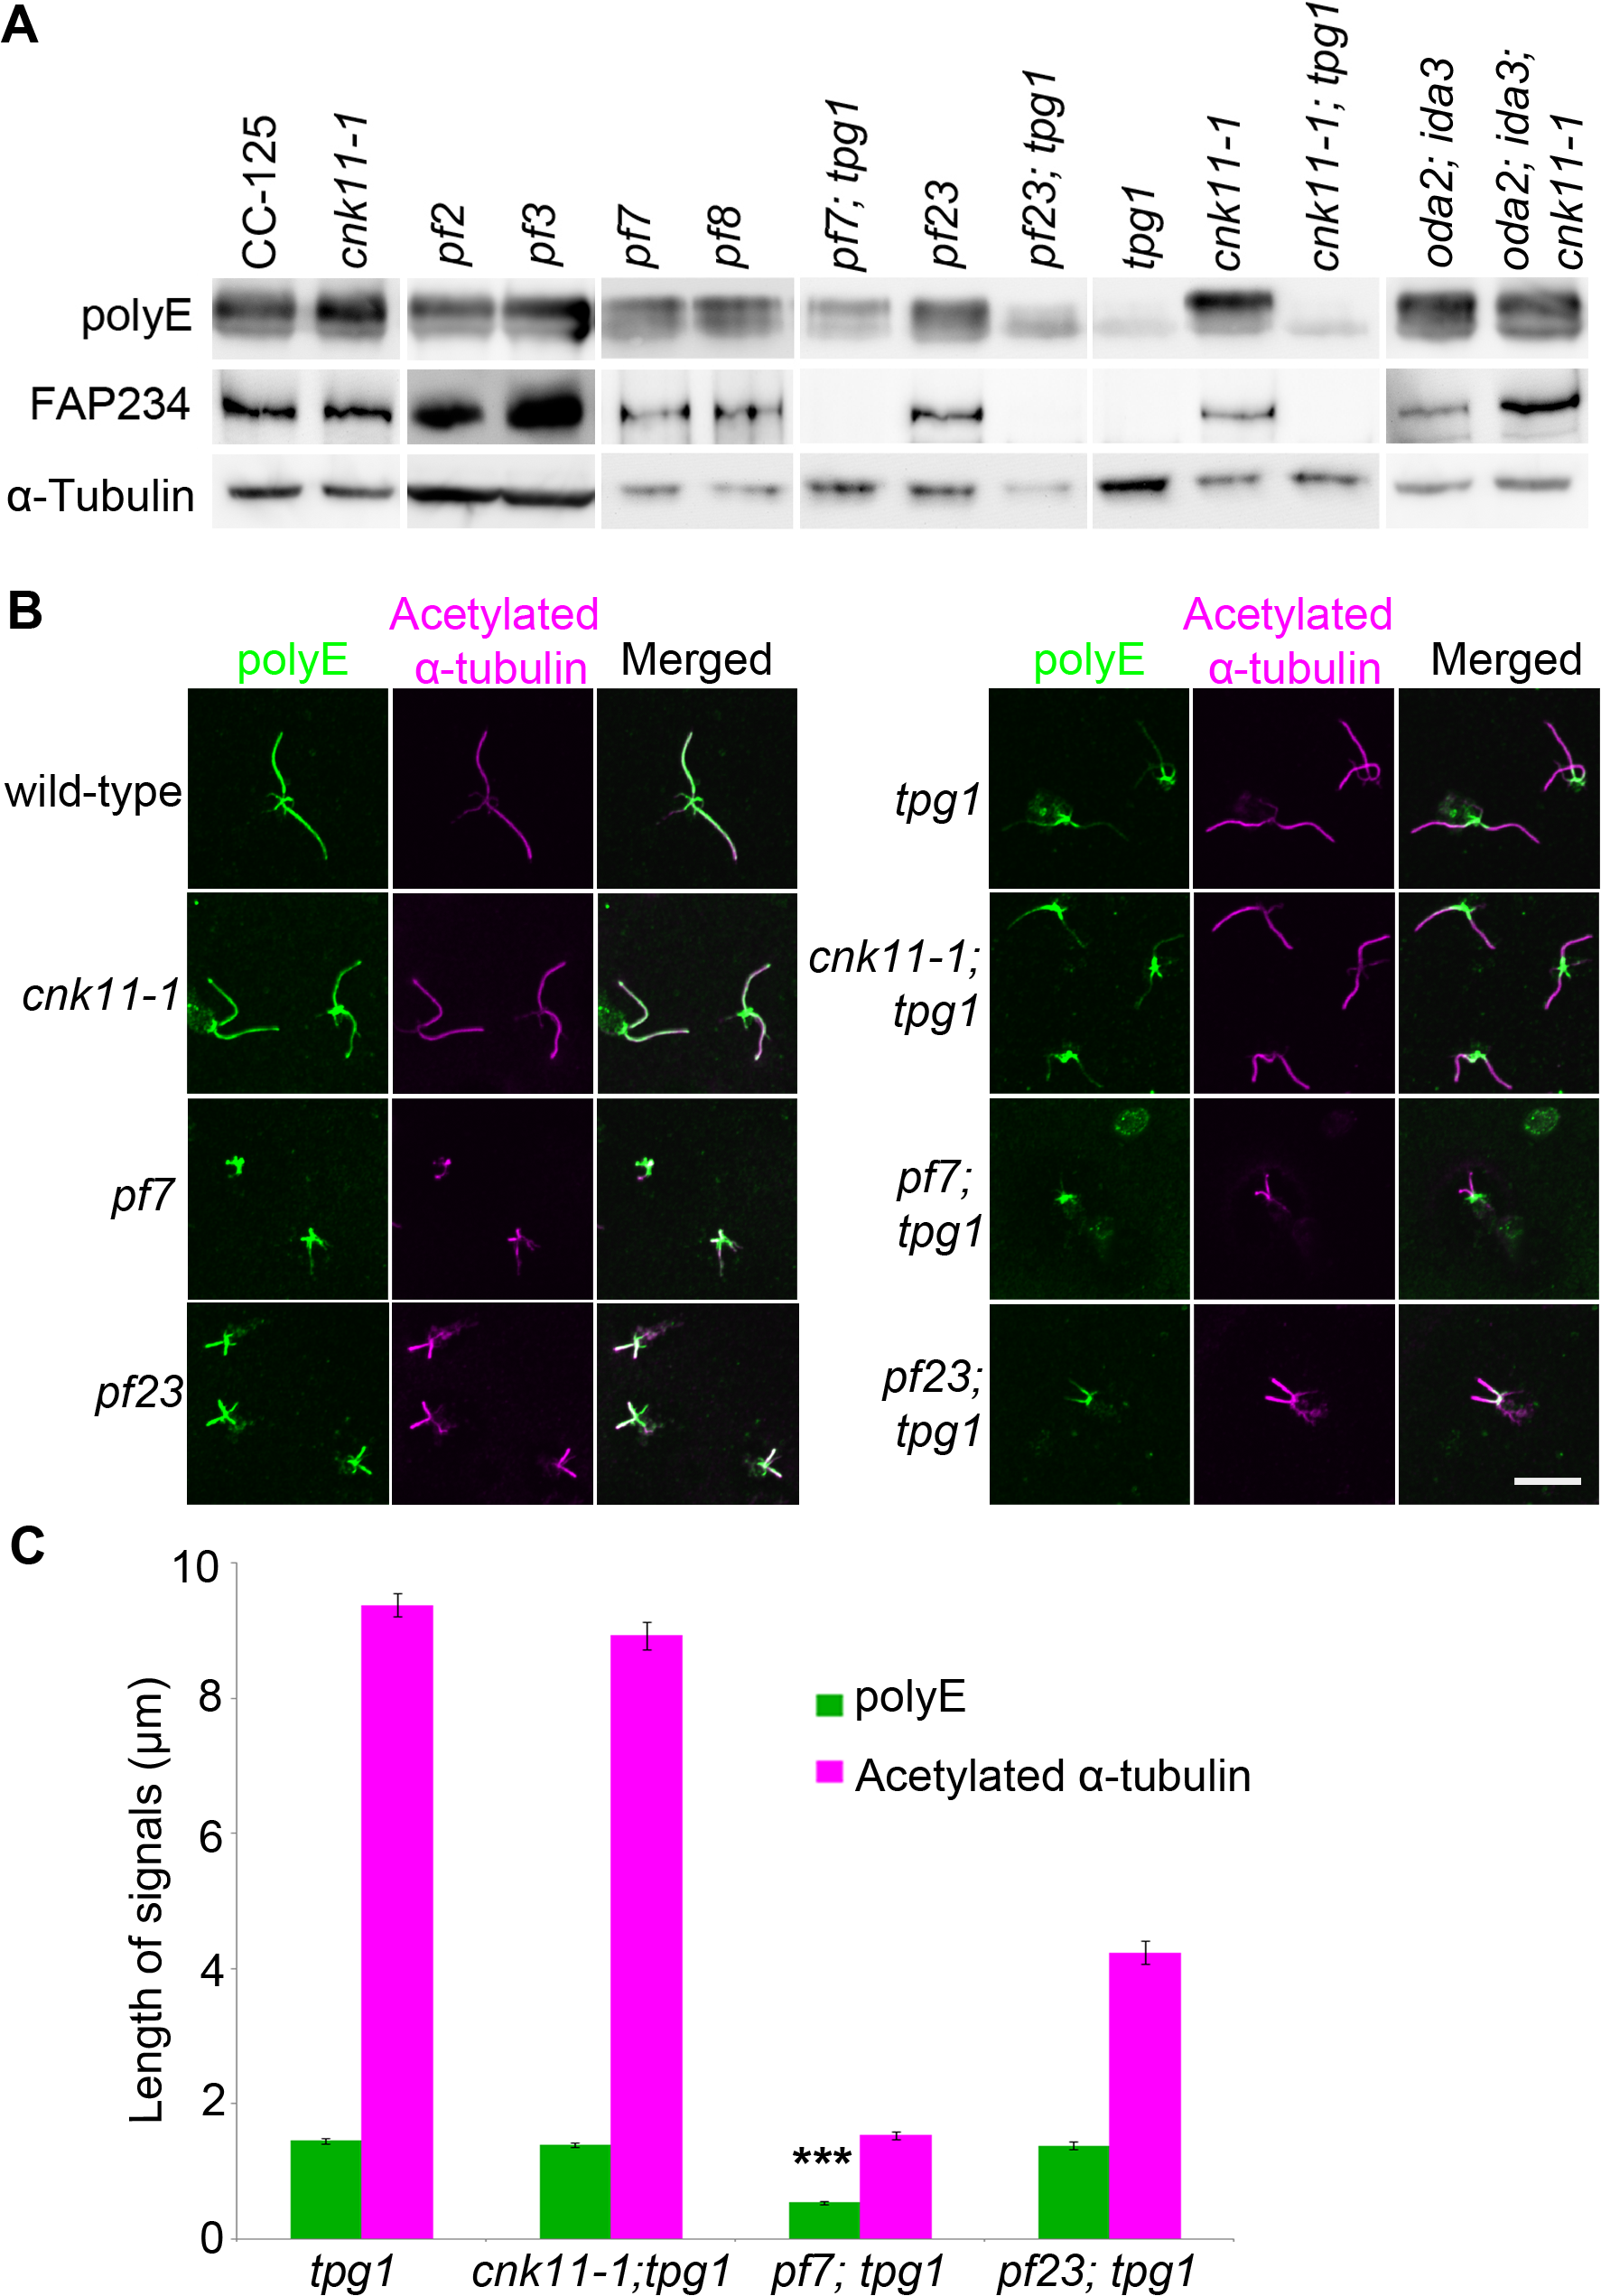 The localization of polyglutamylated tubulin is affected by both <i>tpg1</i> and <i>pf7</i>.